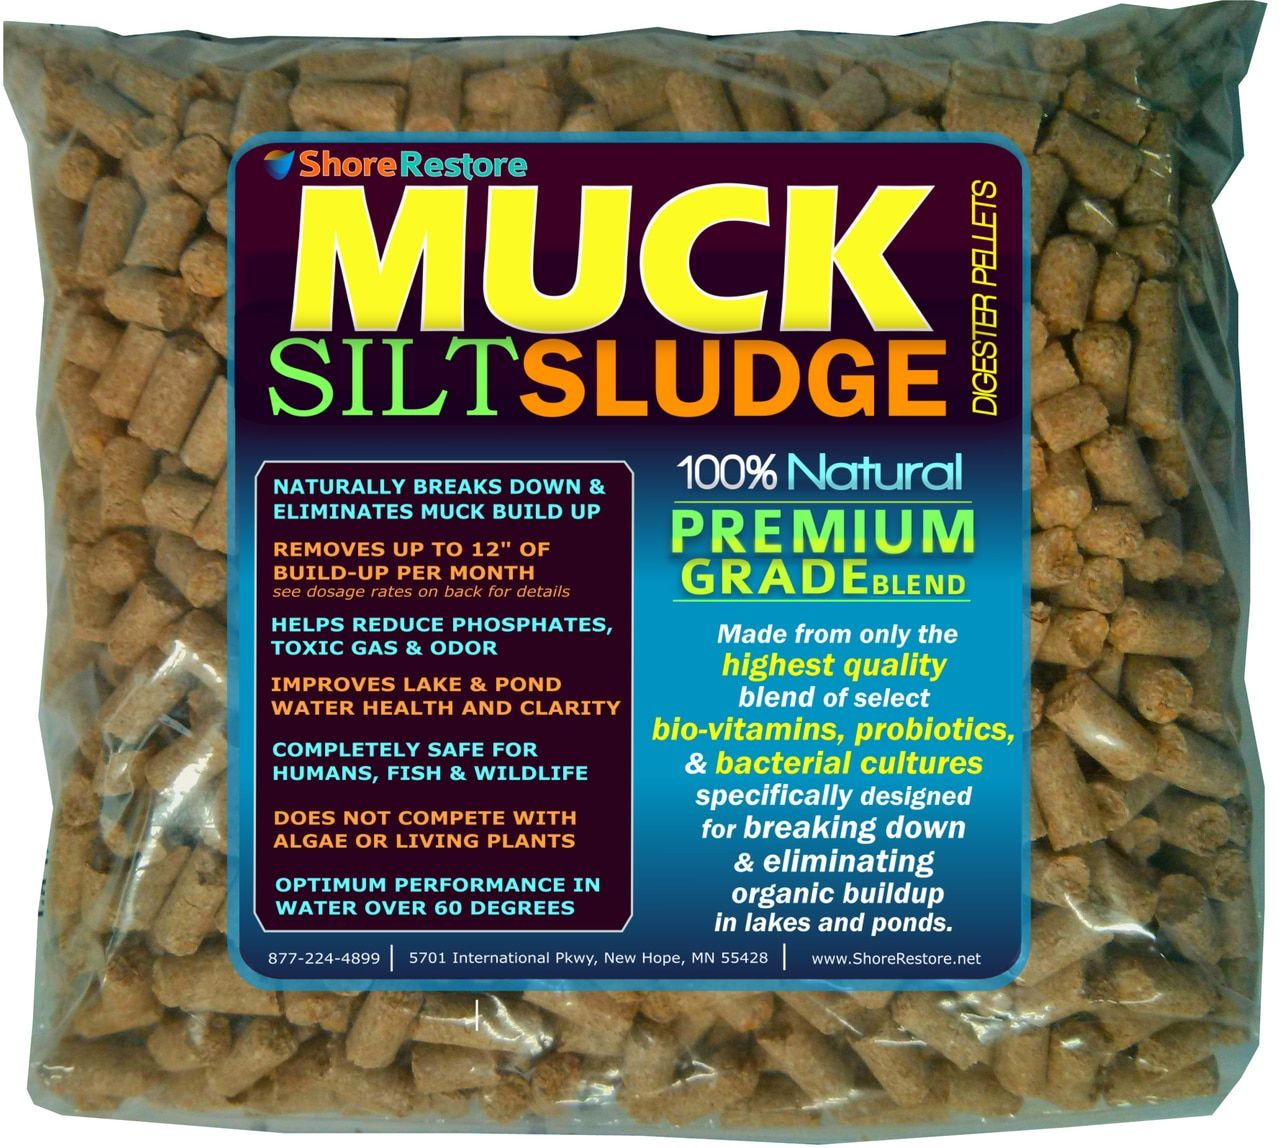 Get rid of lake and pond muck and control bottom sediment